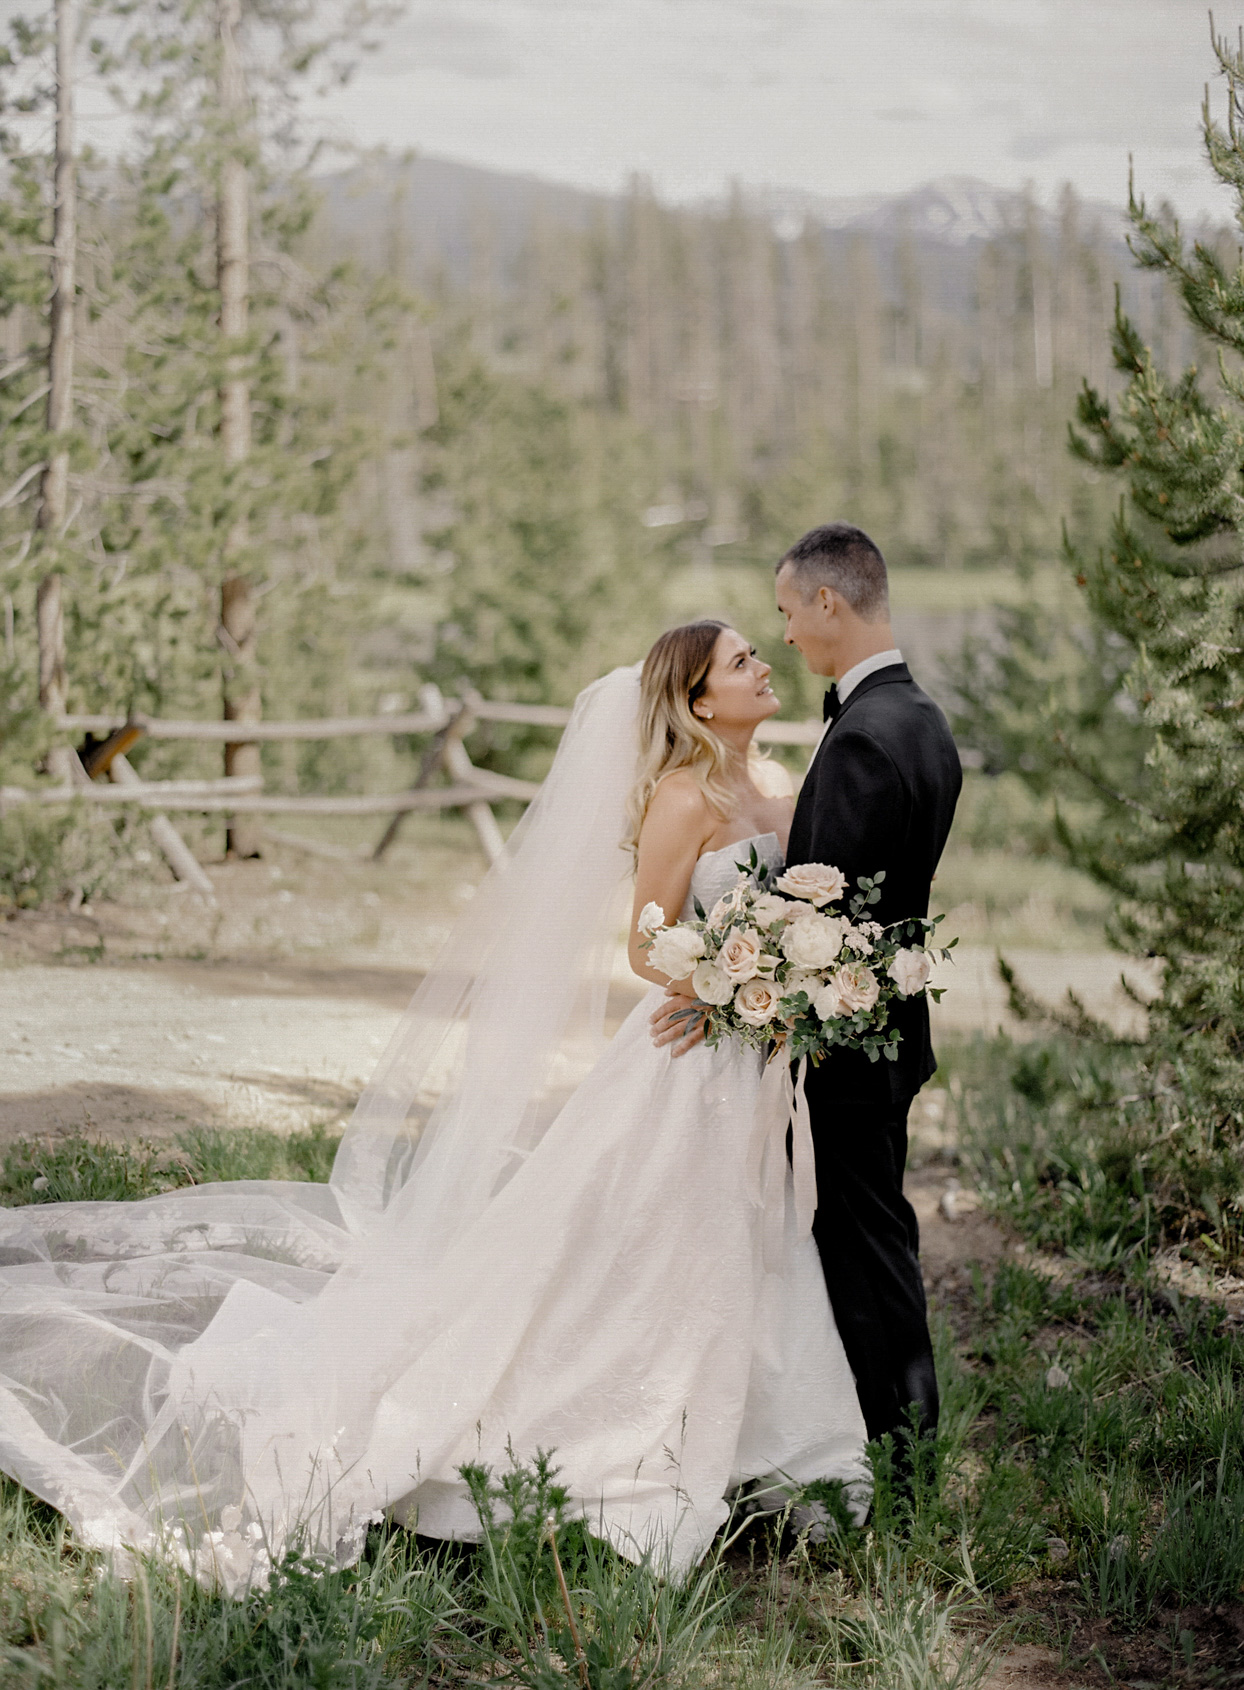 wedding couple first look amongst greenery with mountain backdrop